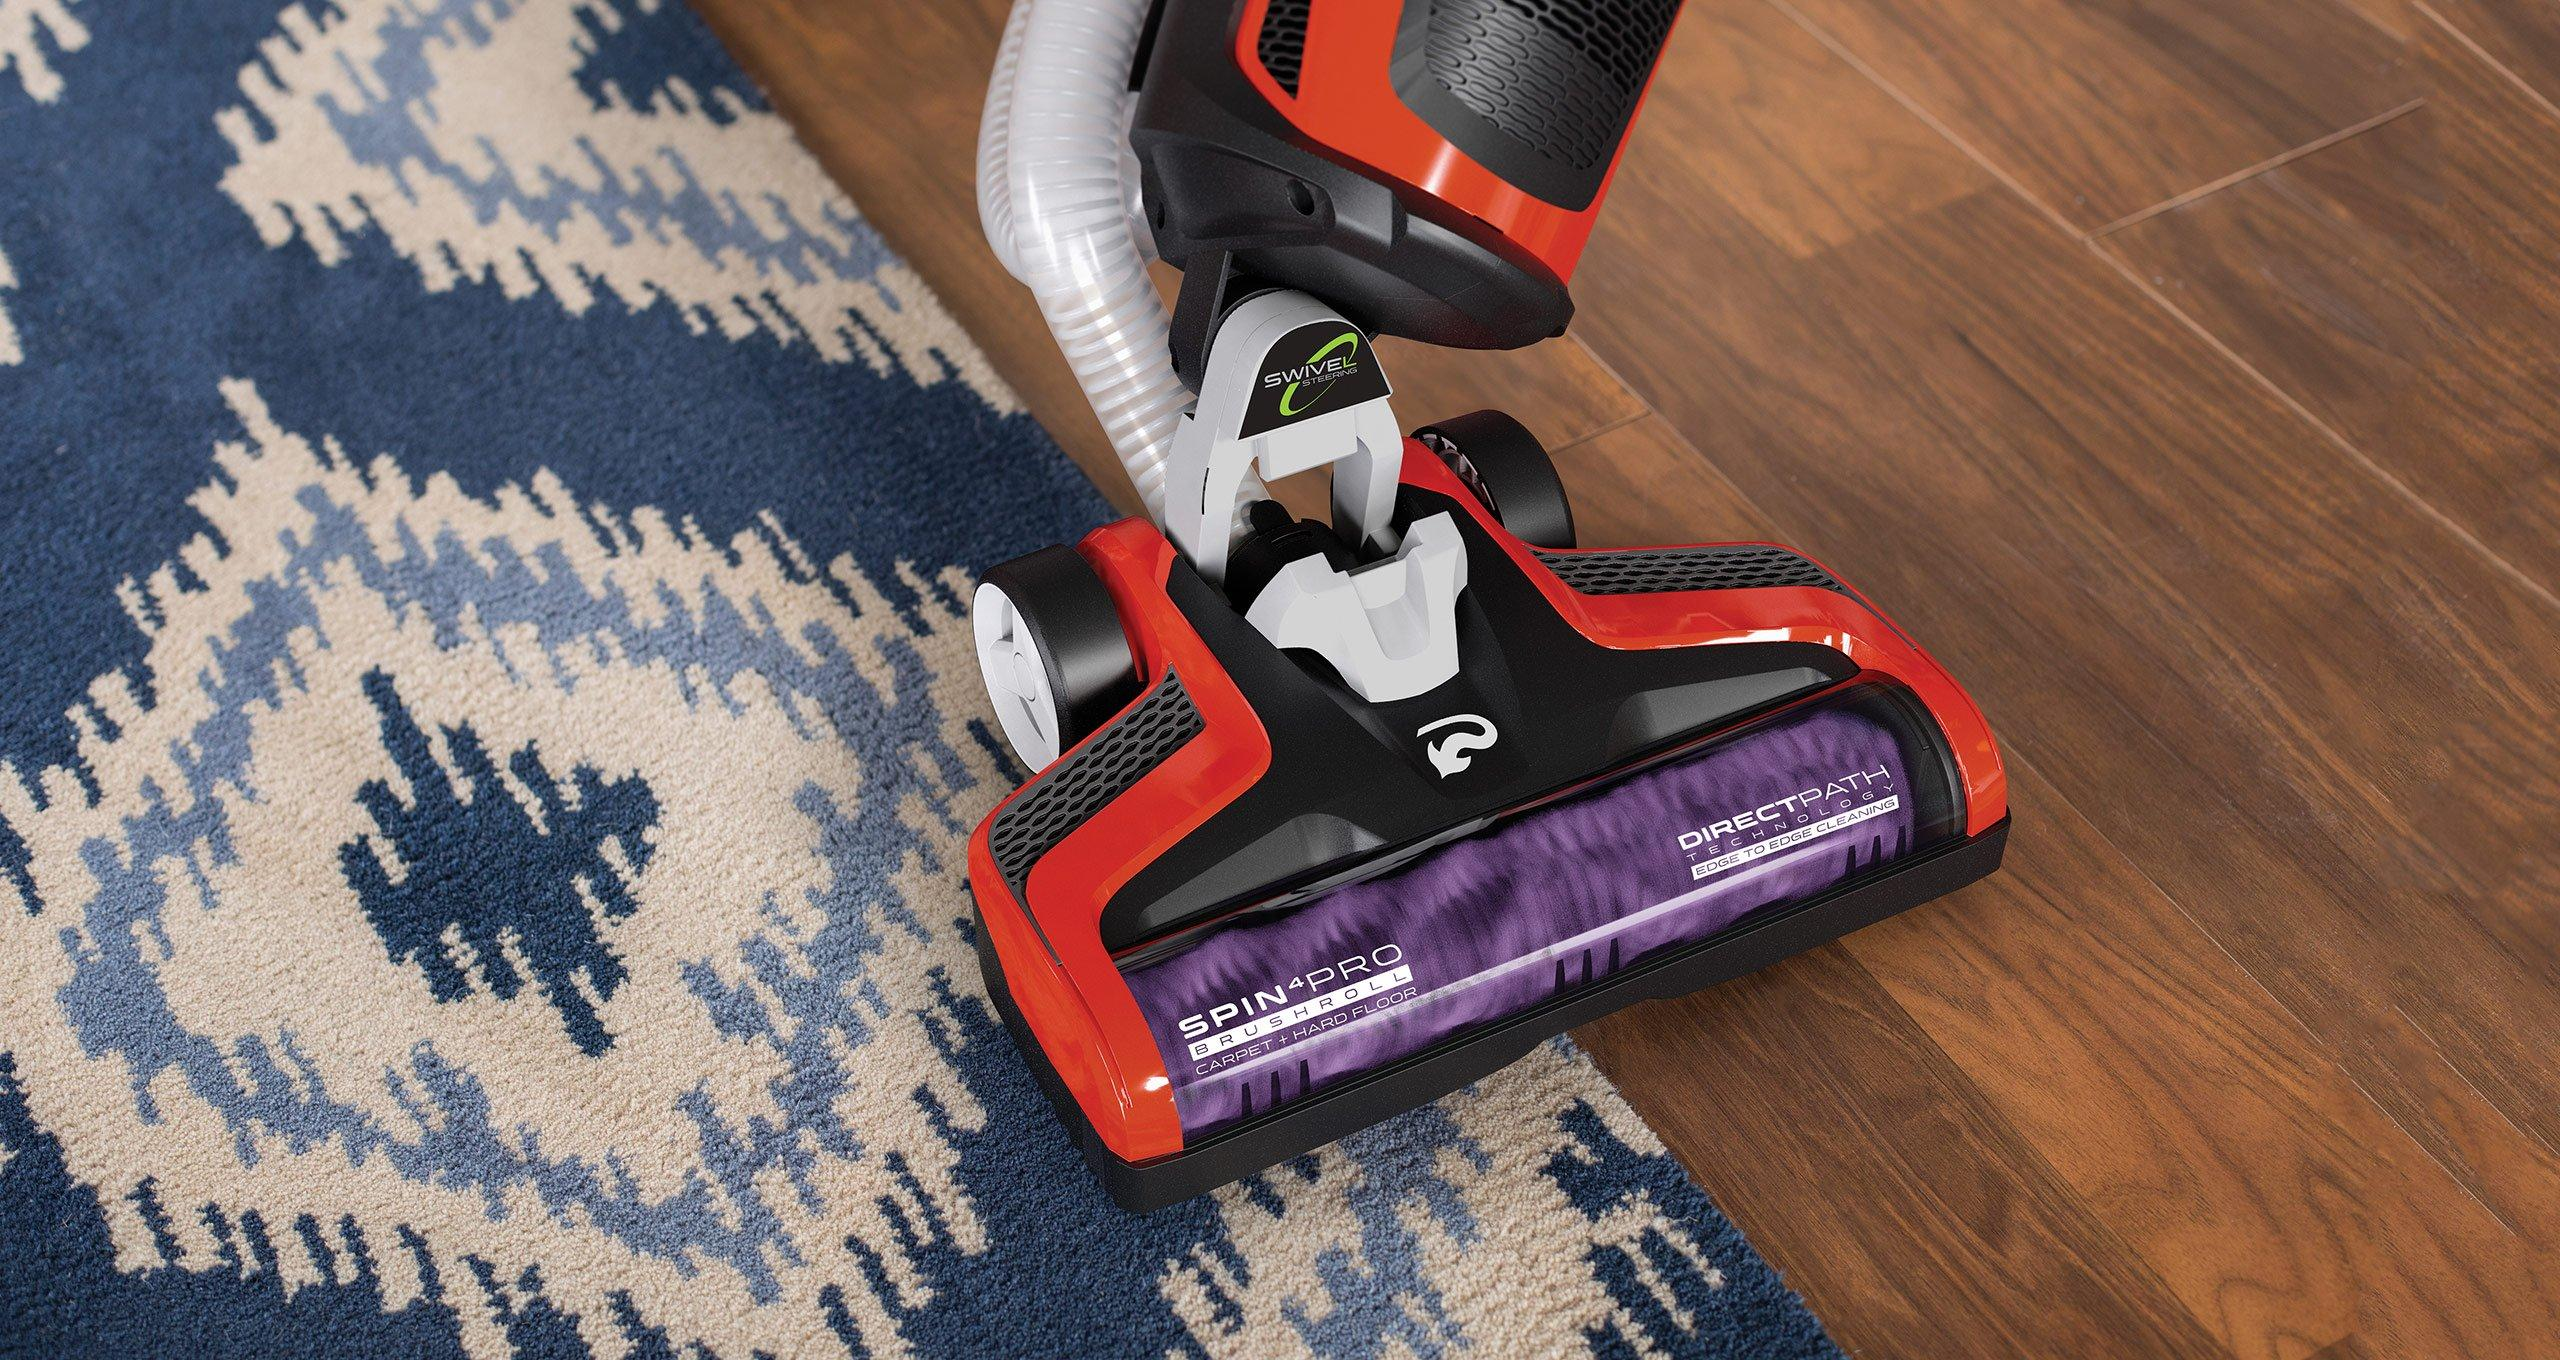 Dirt-Devil-Razor-Pet-Upright-Vacuum-with-Turbo-Tool-Damaged-Box-UD70355BDM thumbnail 3